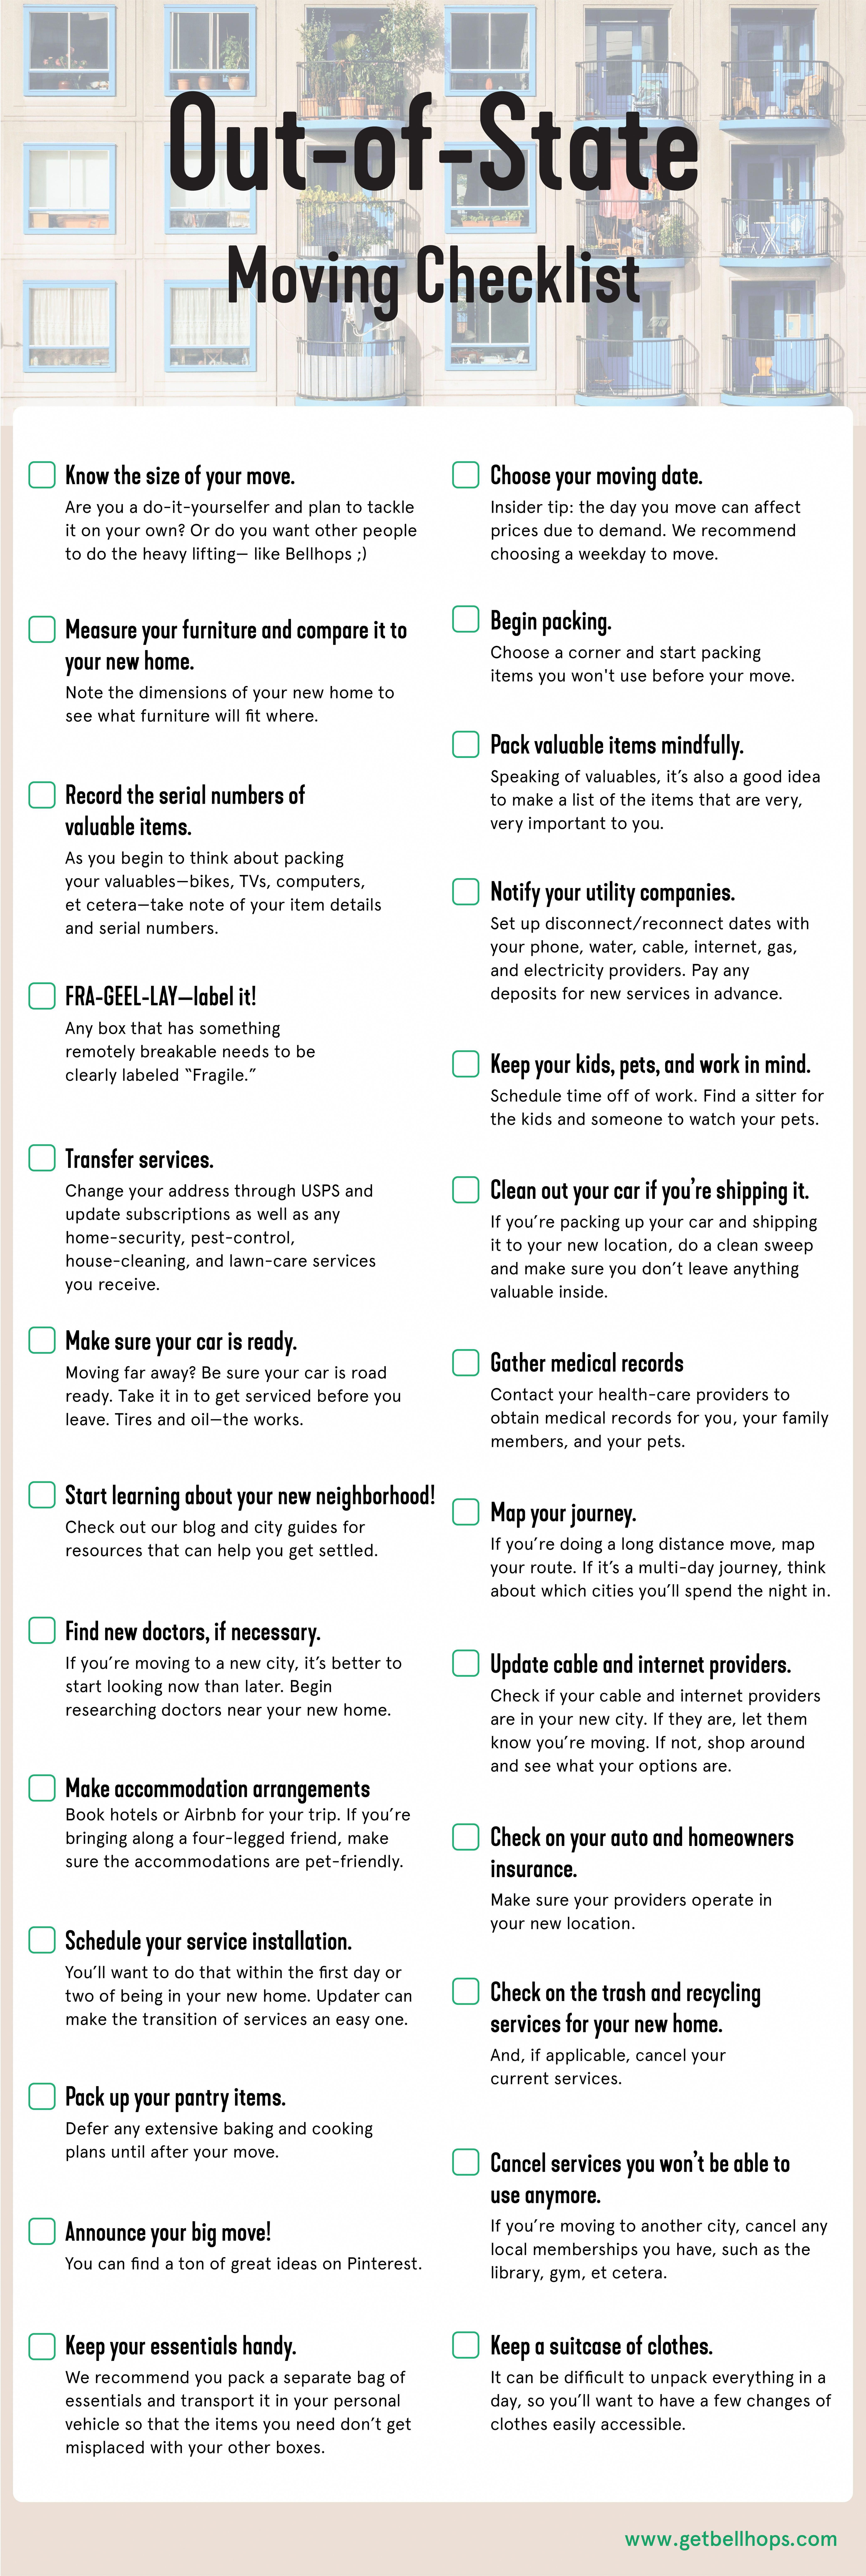 Heres everything to keep in mind for a long distance move